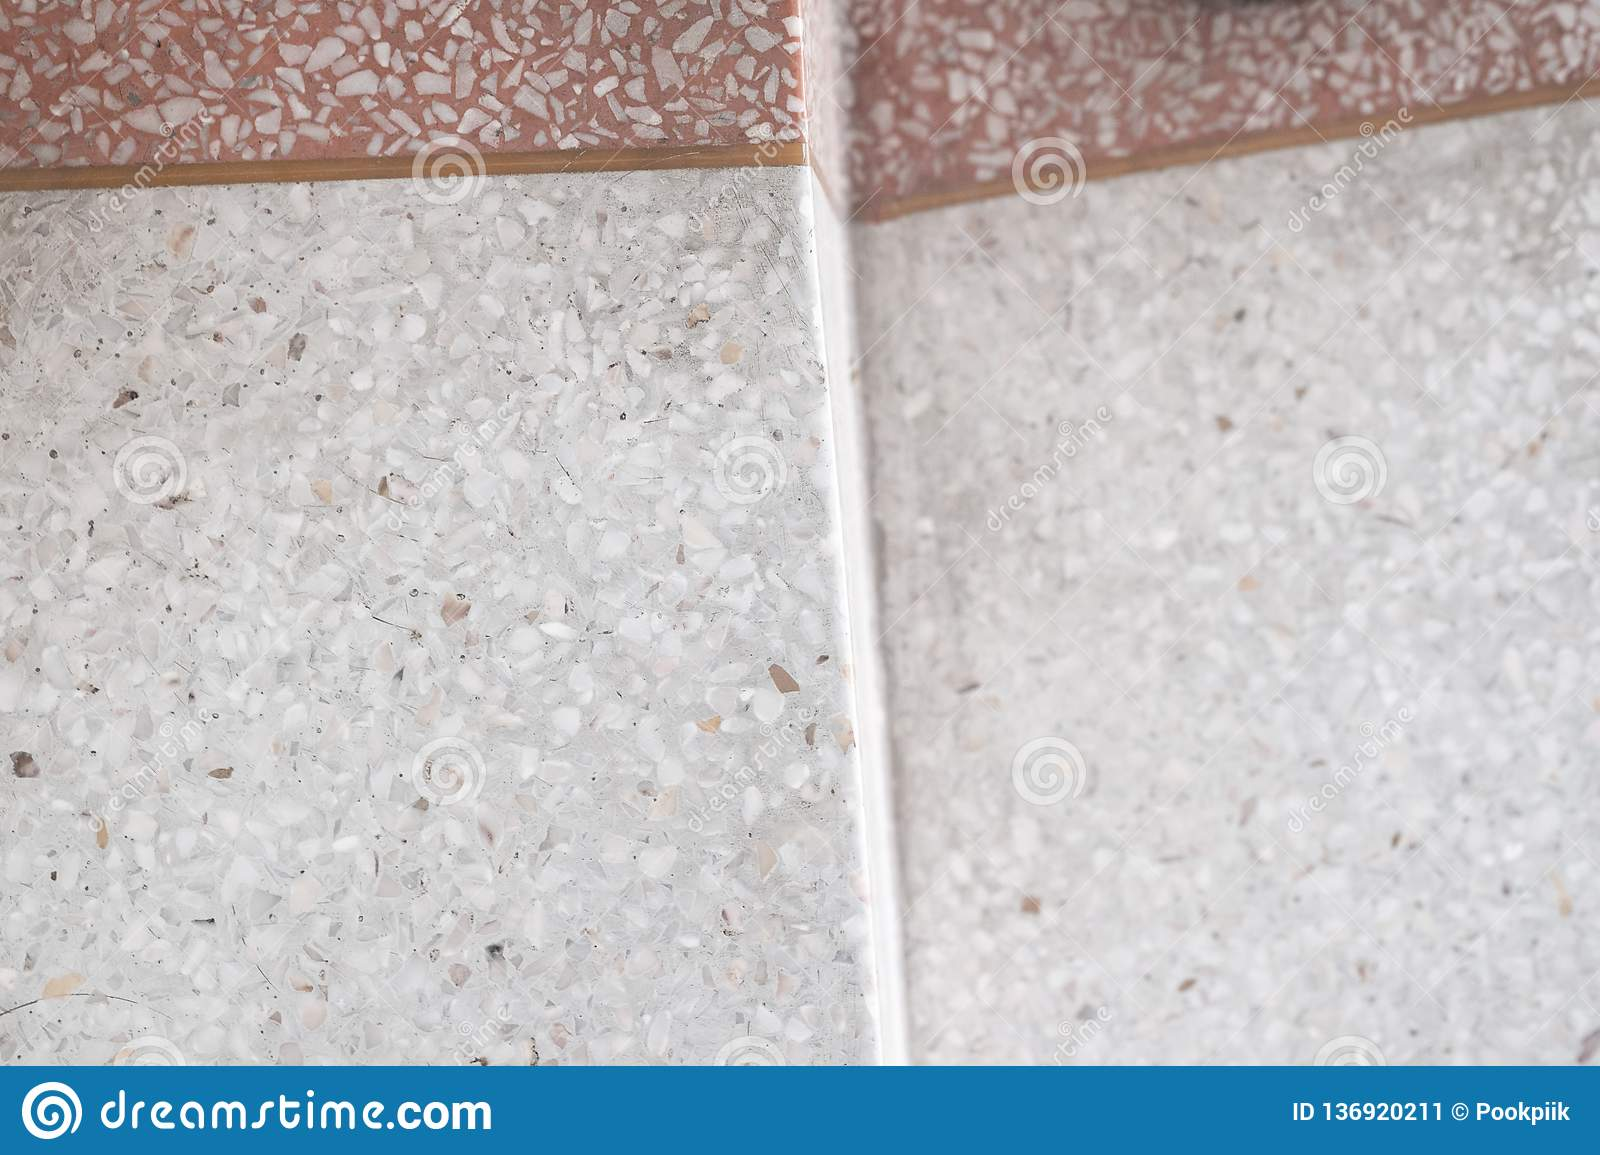 Stairs Terrazzo Polished Stone Walkway And Floor Pattern And Color Surface Marble And Granite Stone Material For Decoration Stock Image Image Of Decorate Granite 136920211